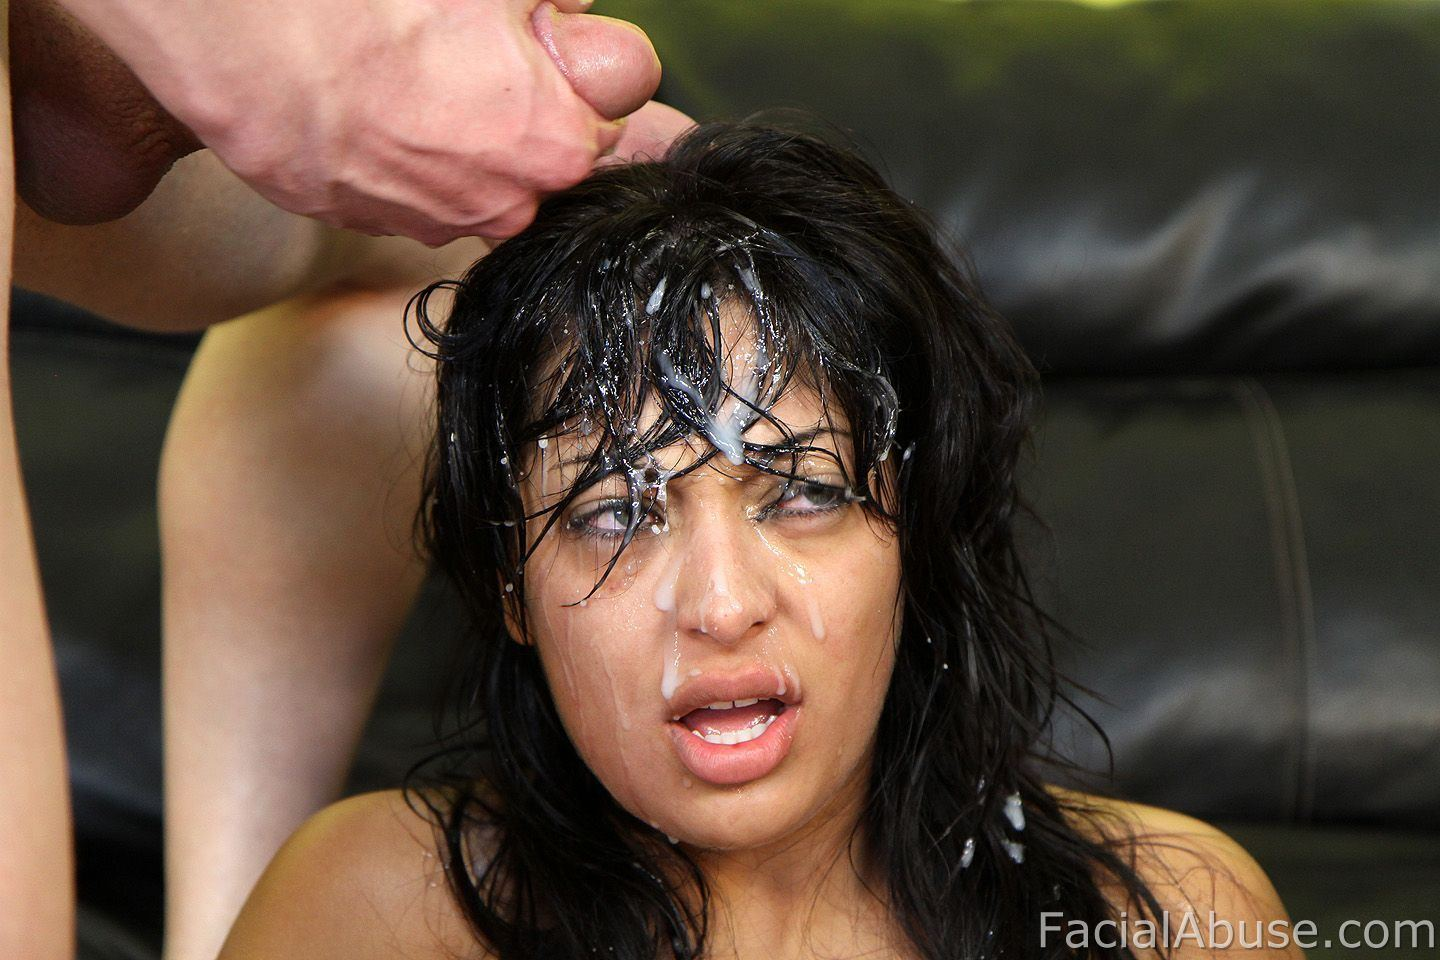 Xxx abused babes